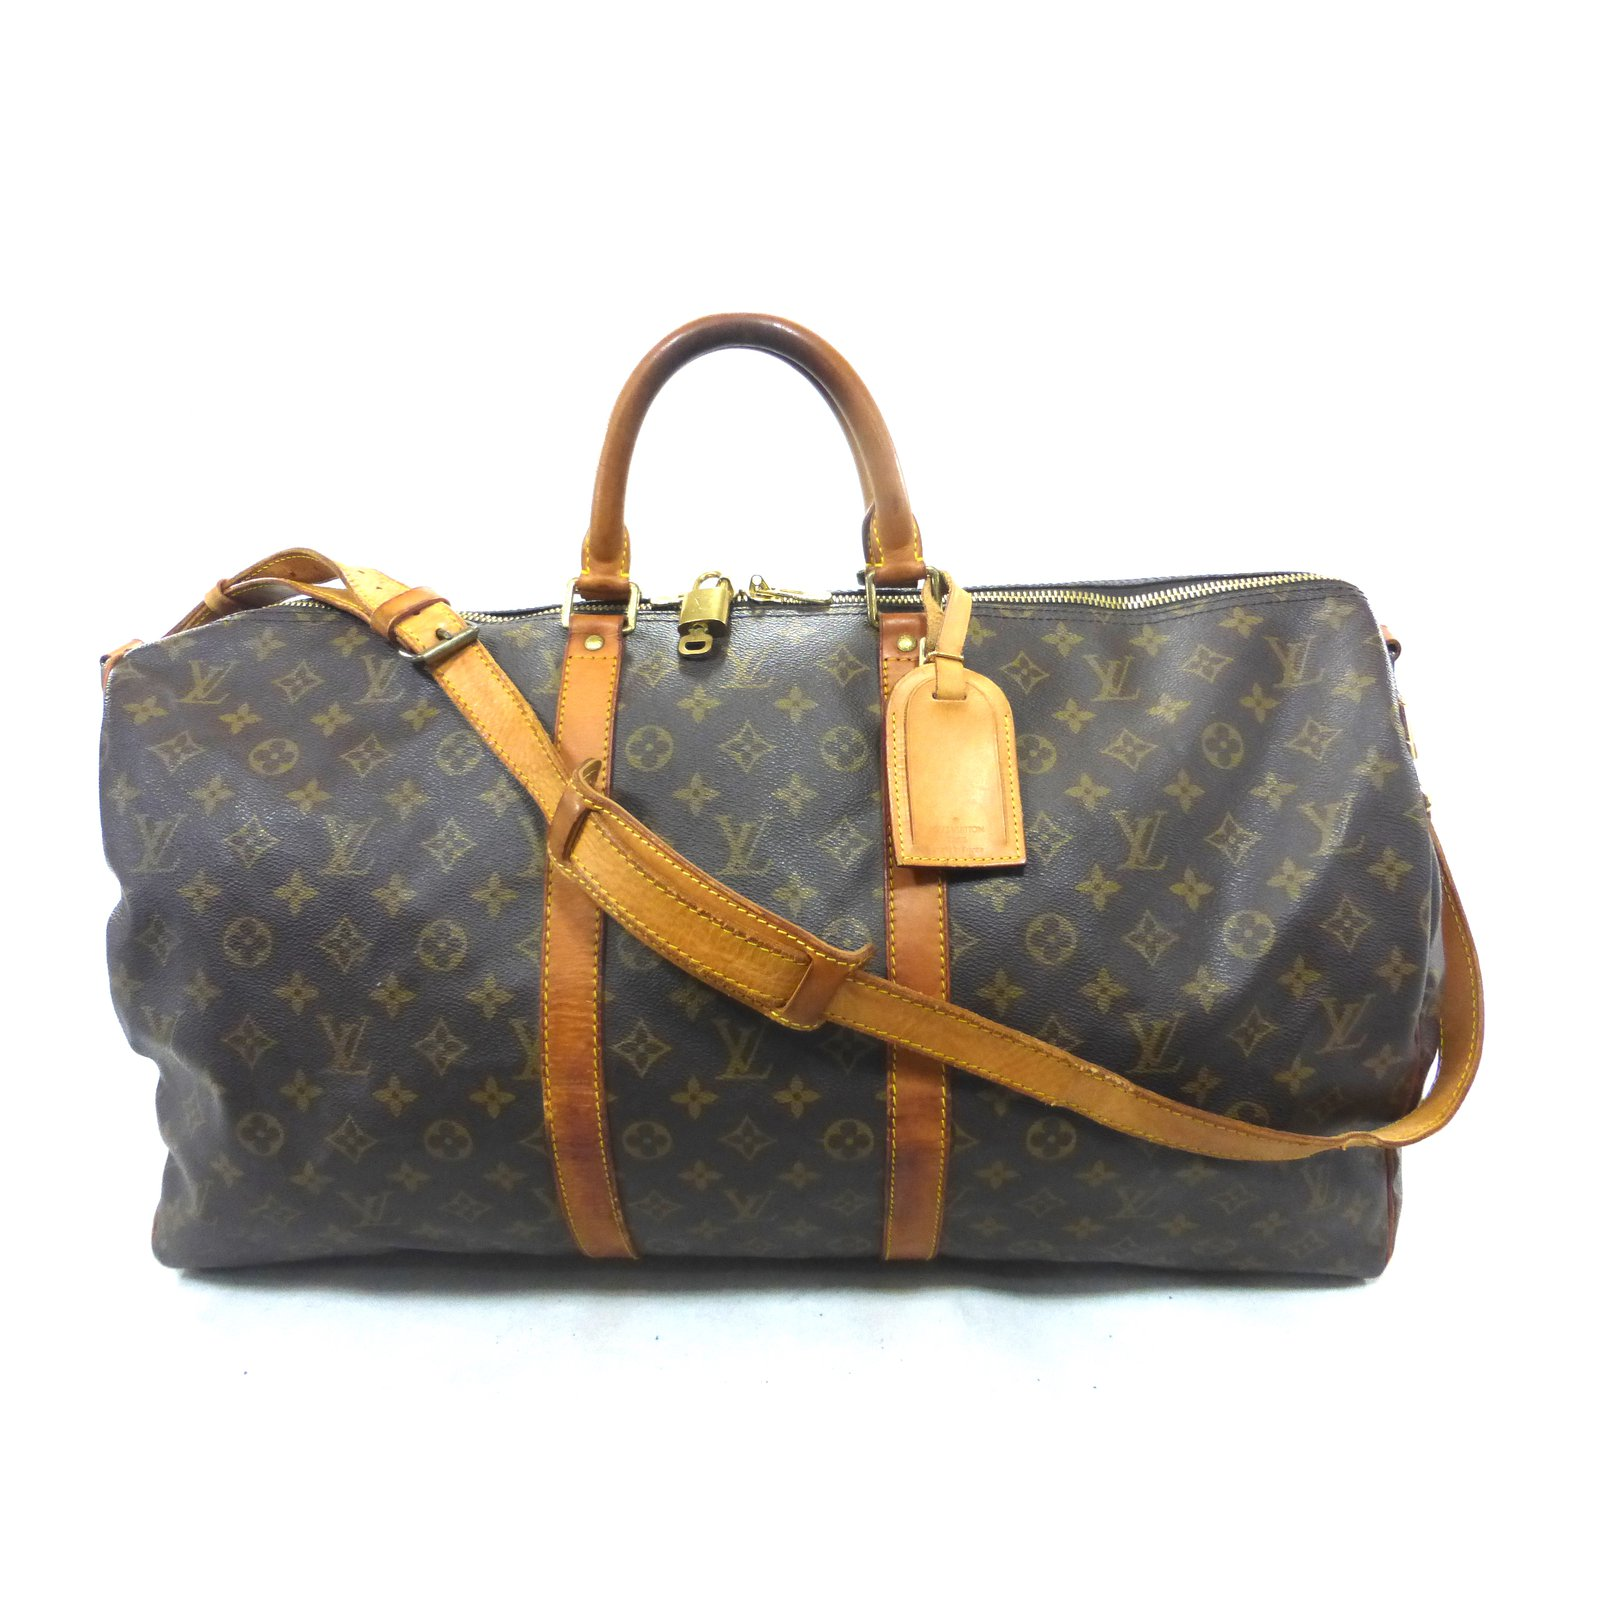 1cfca184446c Louis Vuitton Keepall 55 bandouliere monogram Travel bag Leather Brown  ref.88169